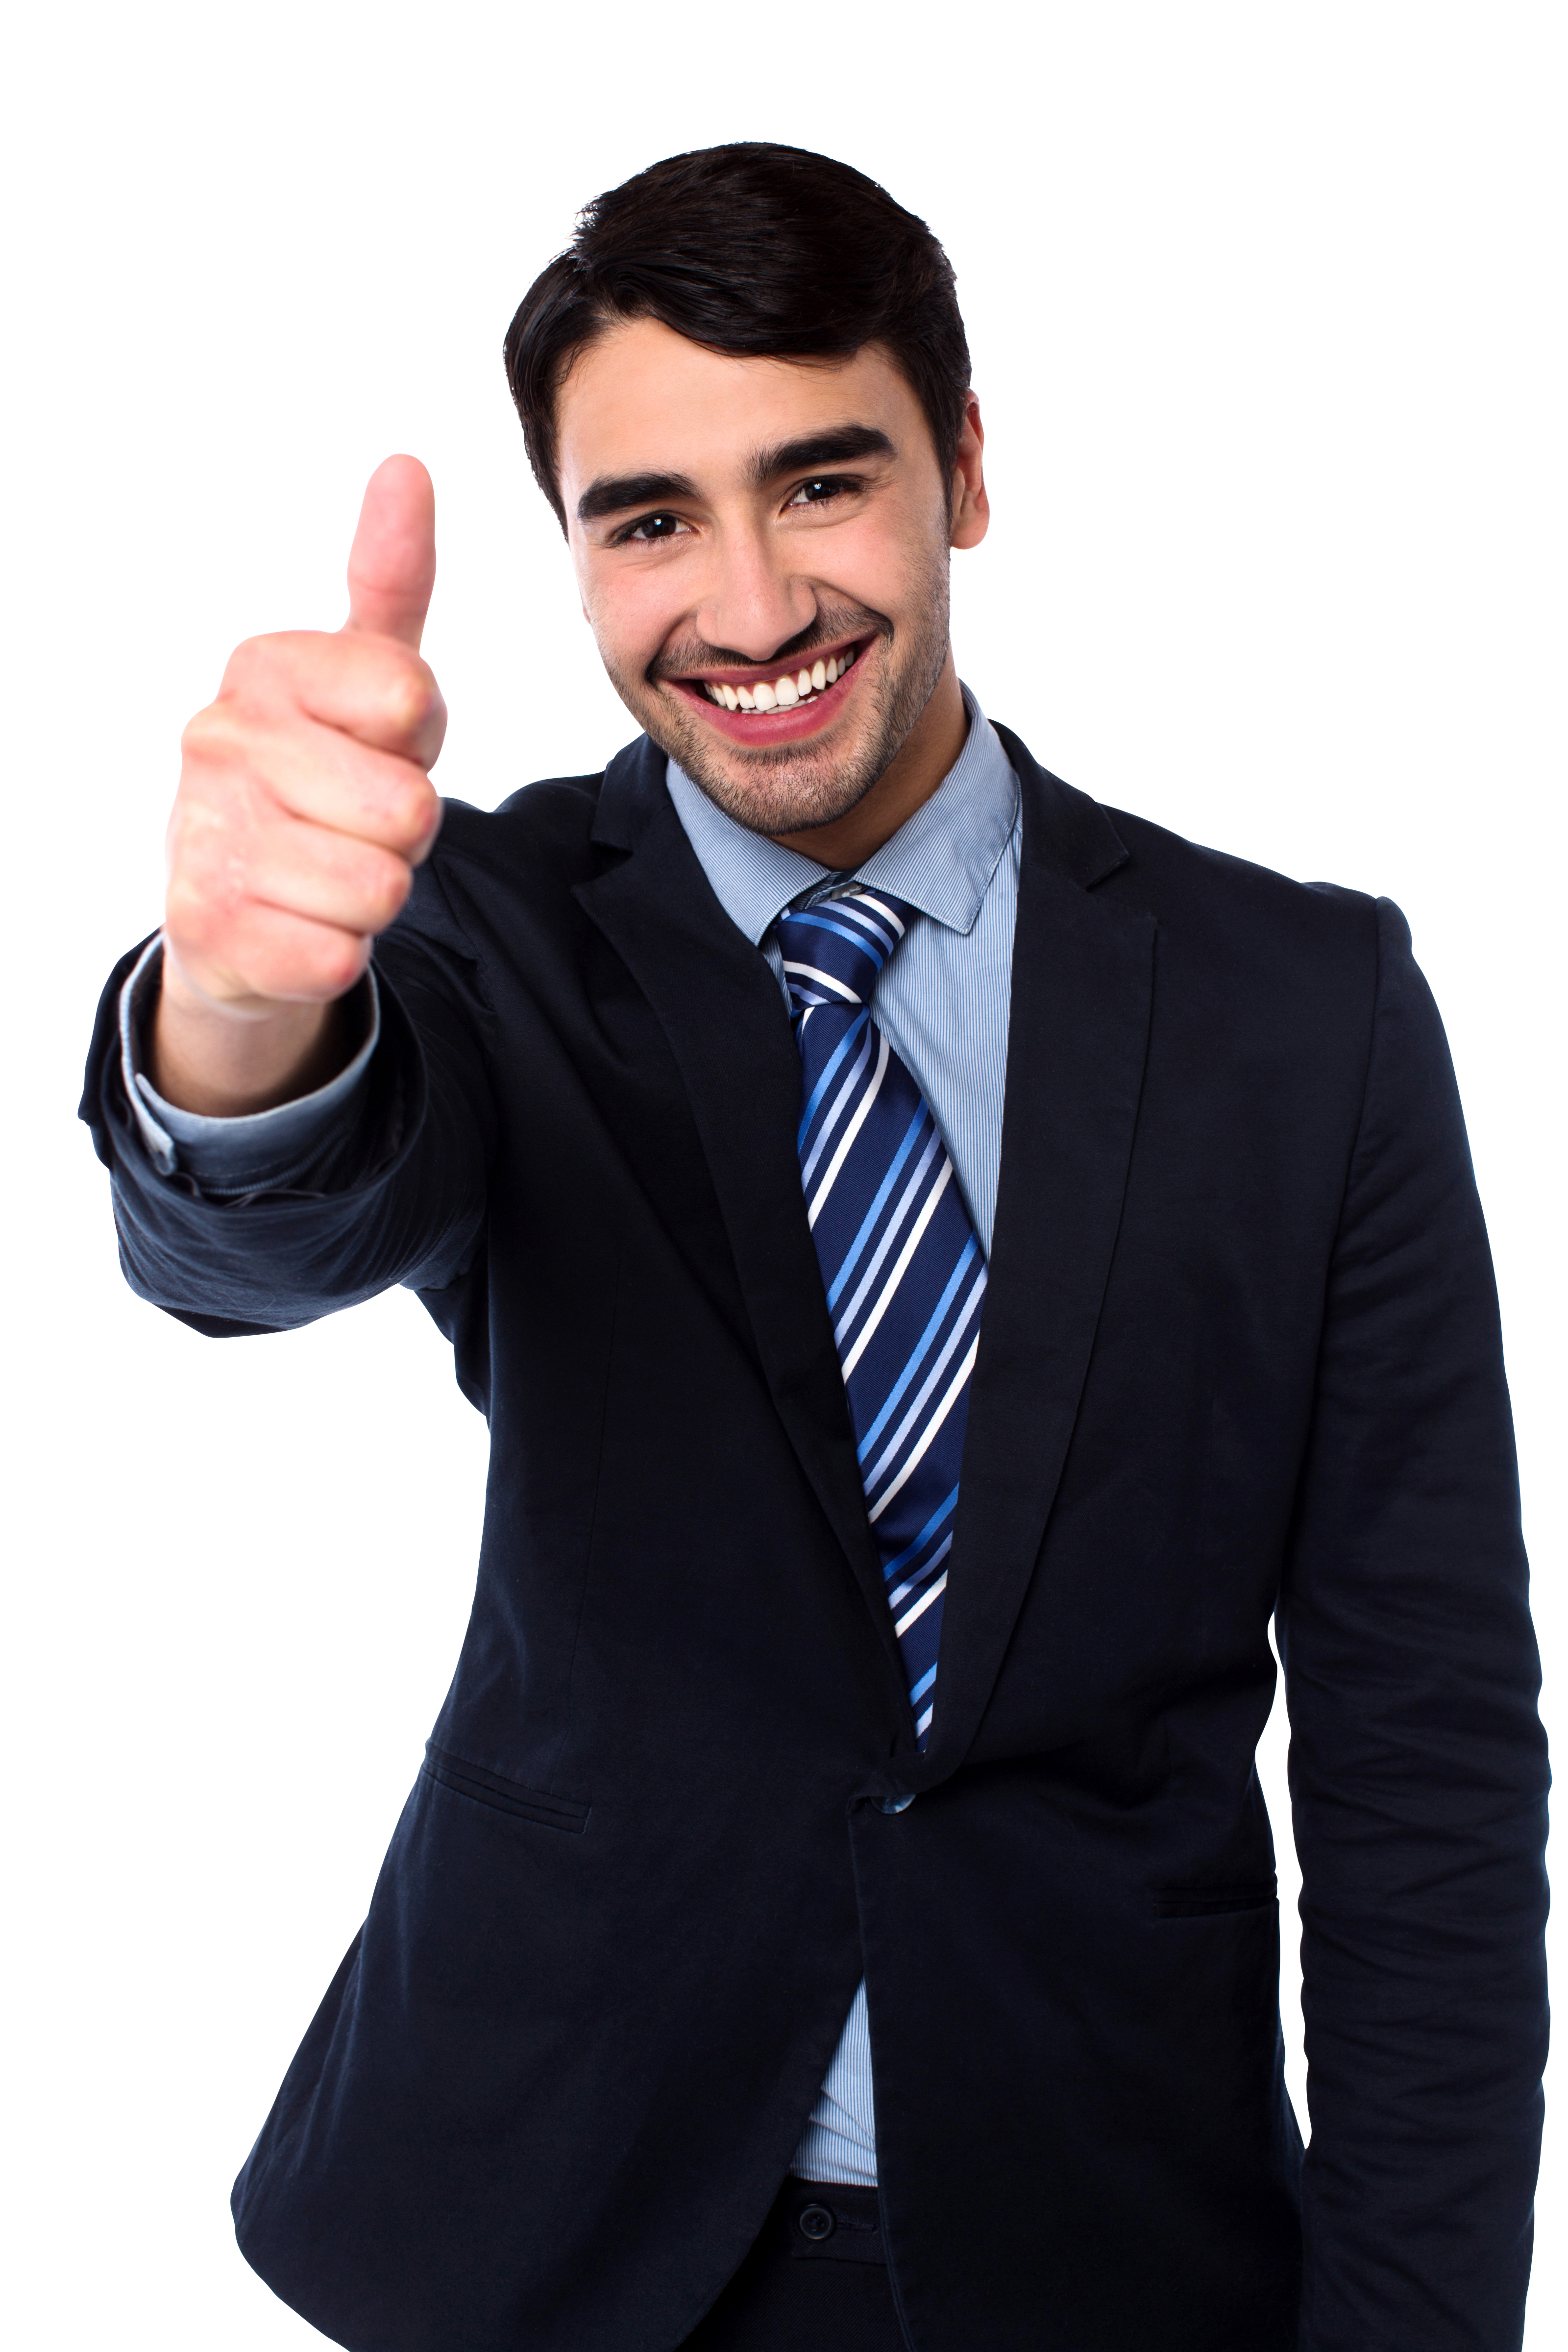 Men Pointing Thumbs Up PNG Image